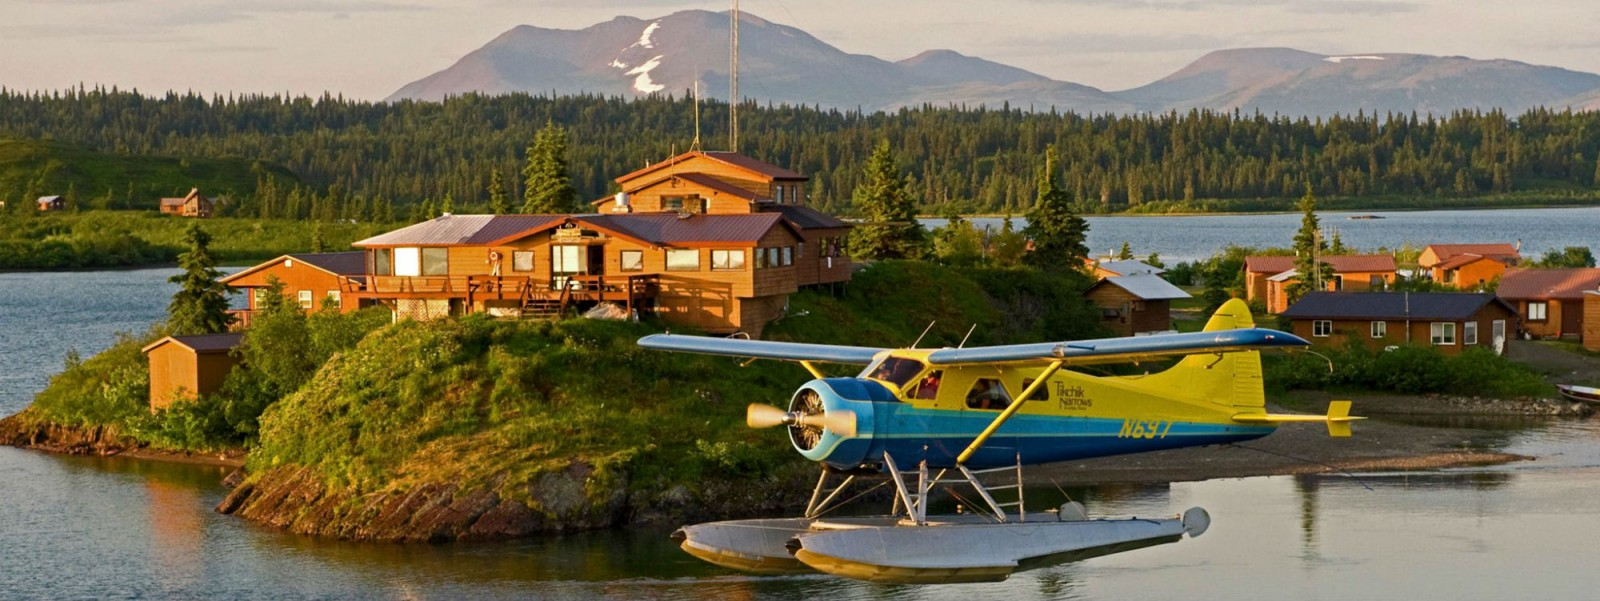 Top Luxury Alaska Fishing Lodges My Alaskan Fishing Trip - 5 best fly in fishing lodges in canada